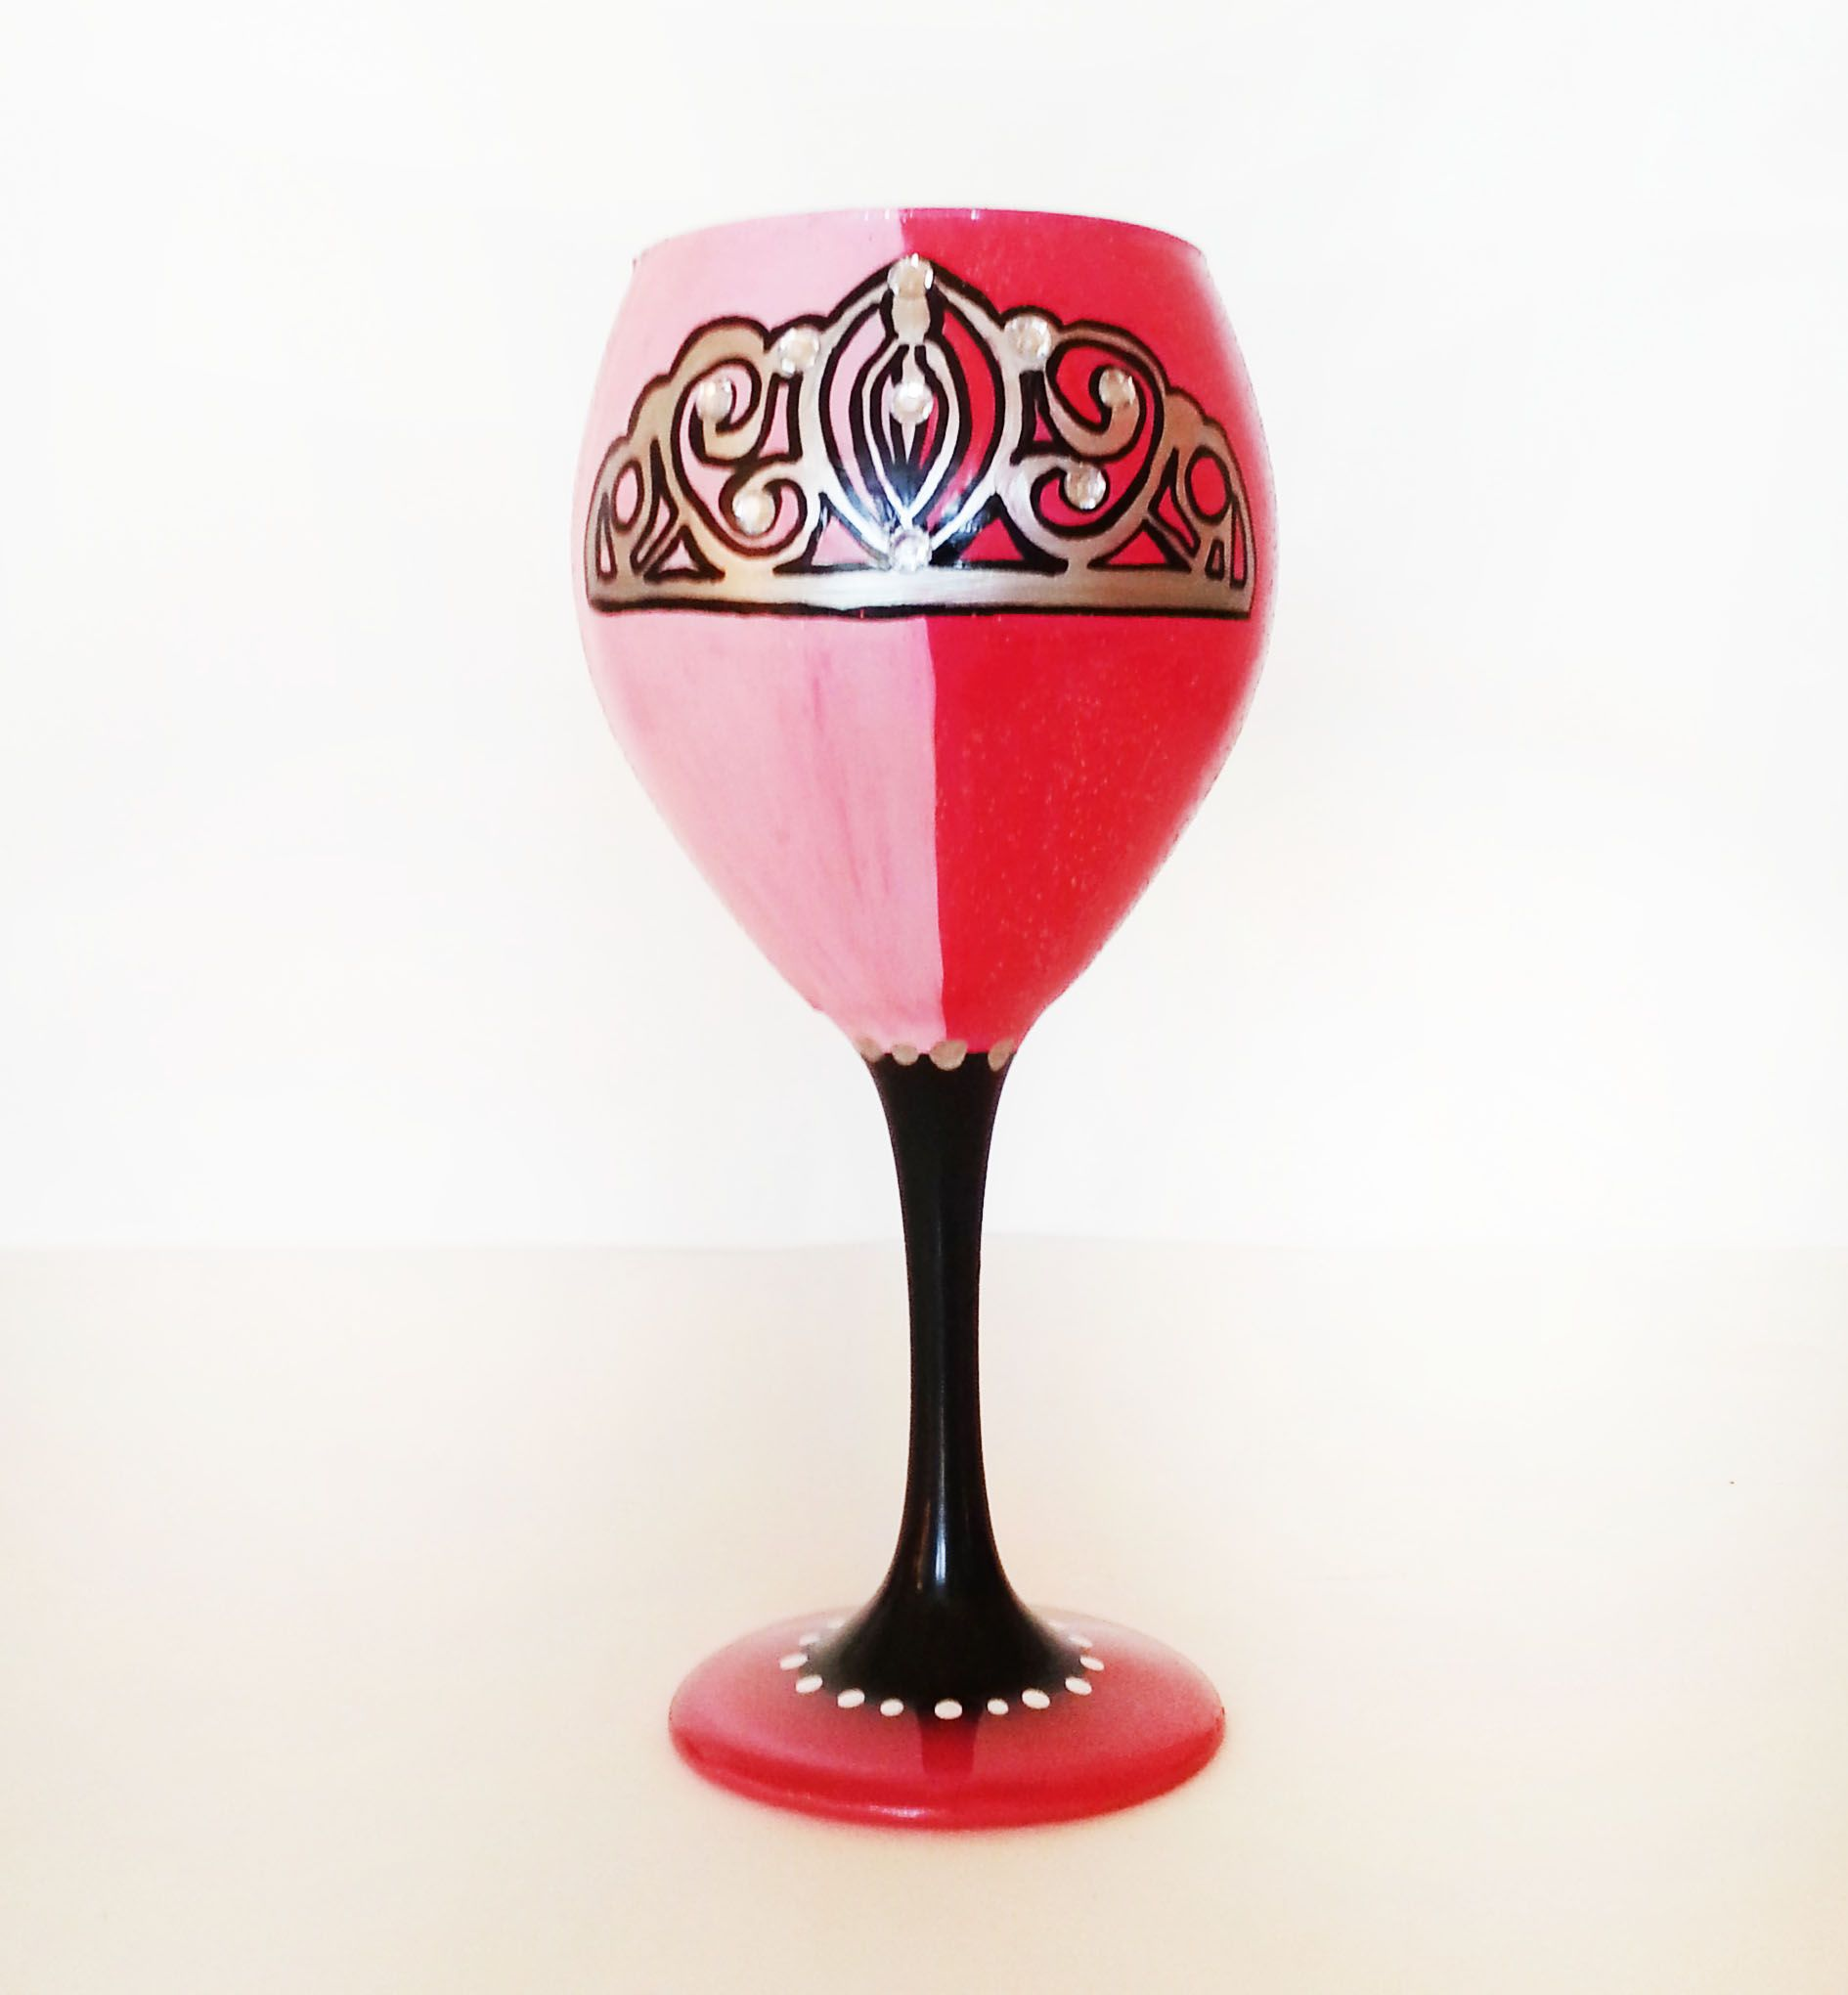 Pin By Catherine Strauss On Www Etsy Com Shop Cbglassware Wine Glass Crafts Diy Wine Glasses Diy Wine Glass